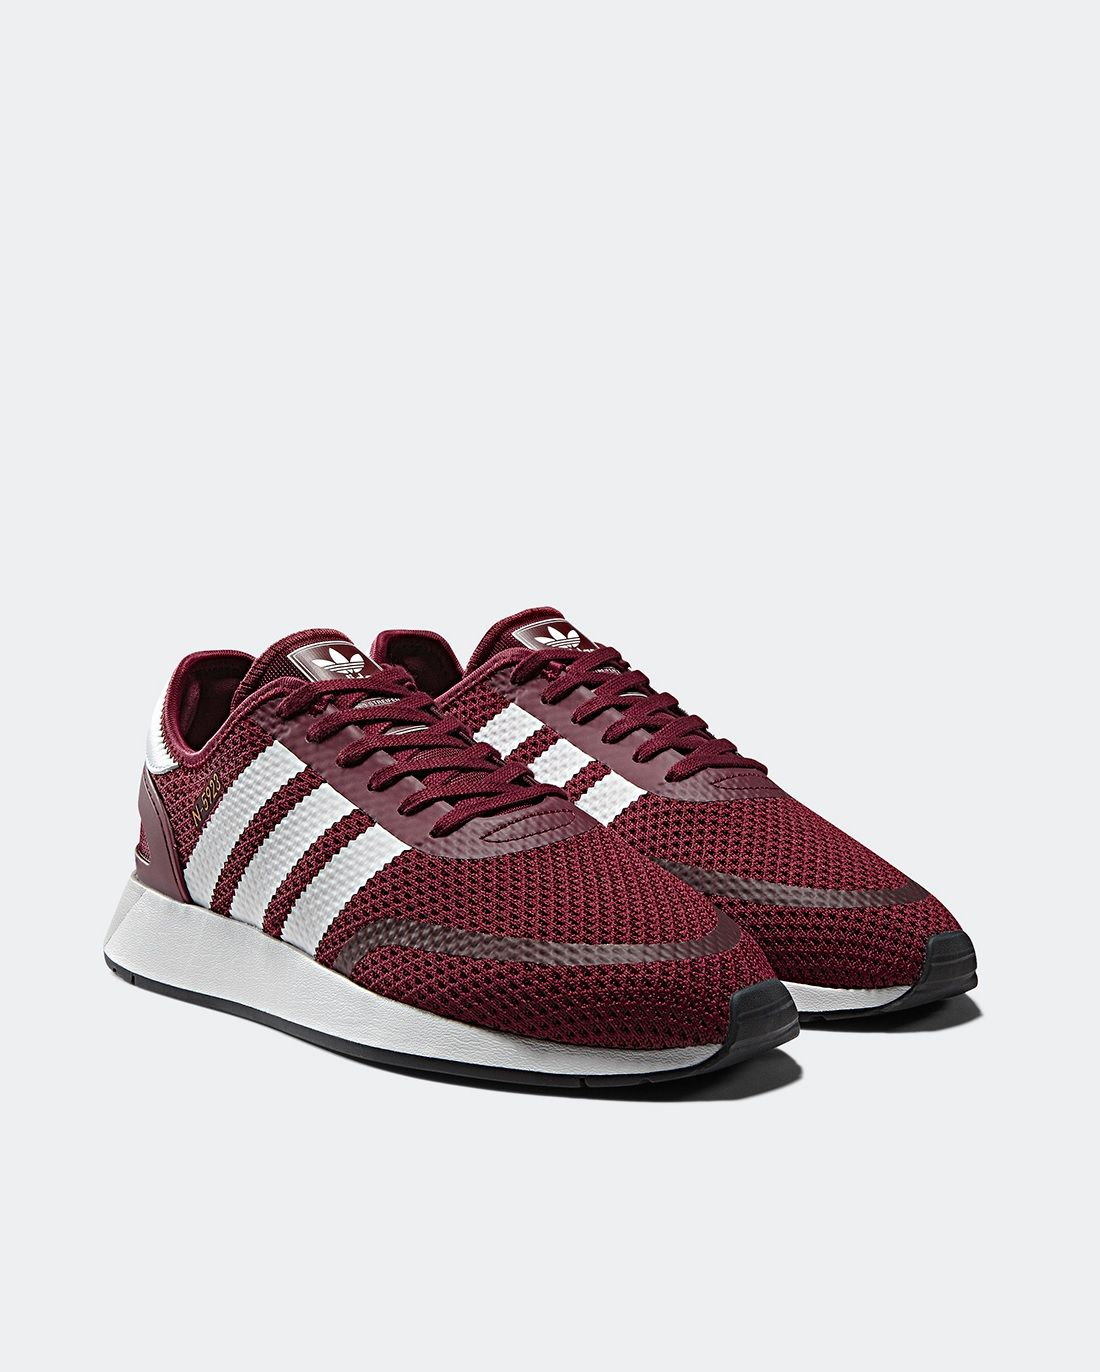 adidas Originals N-5923: Burgundy